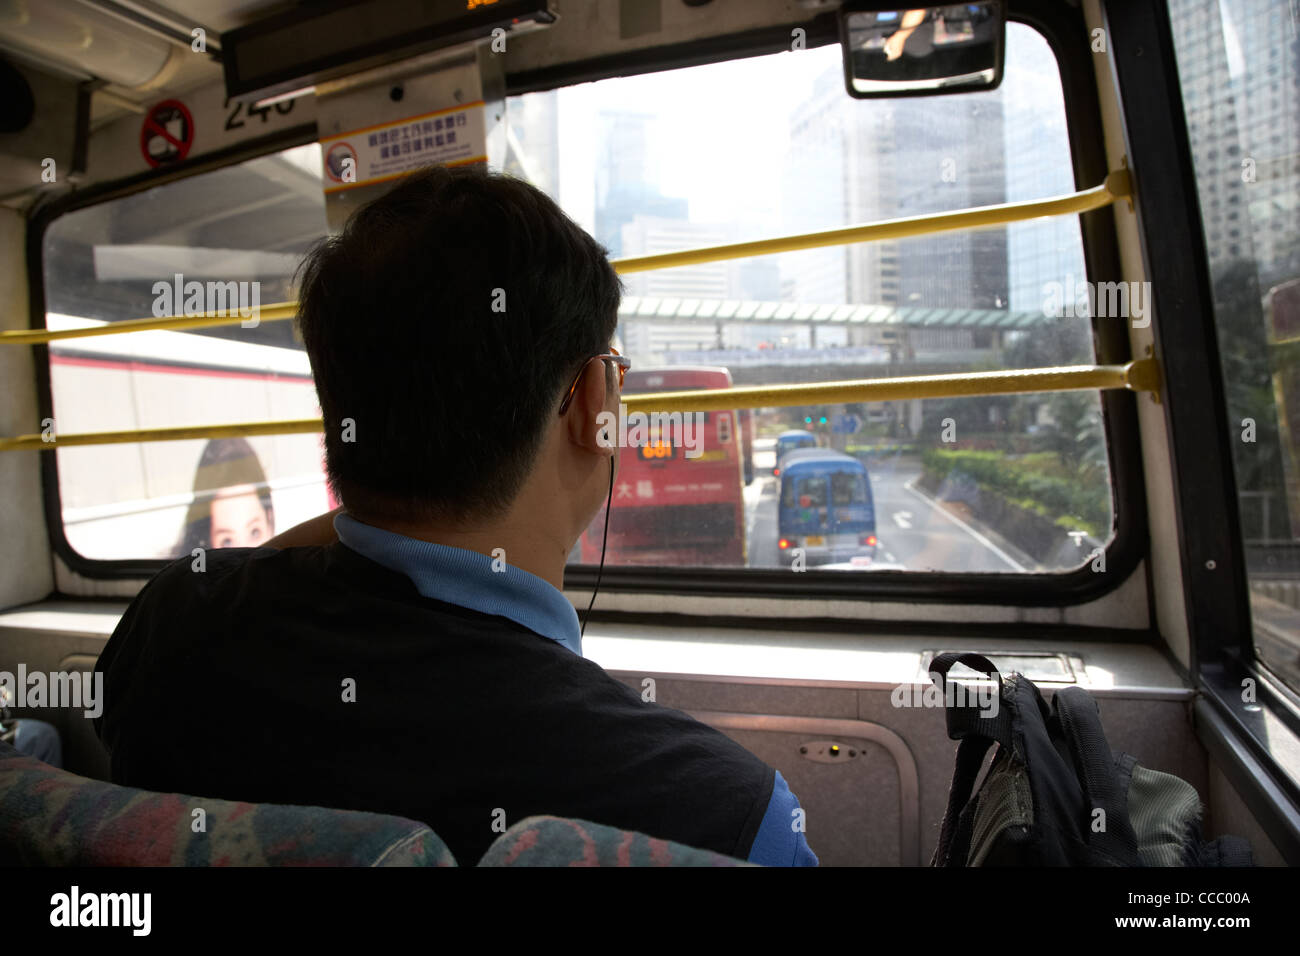 chinese man with earphones and backpack commuting on the front seat of a double deck bus downtown hong kong hksar - Stock Image